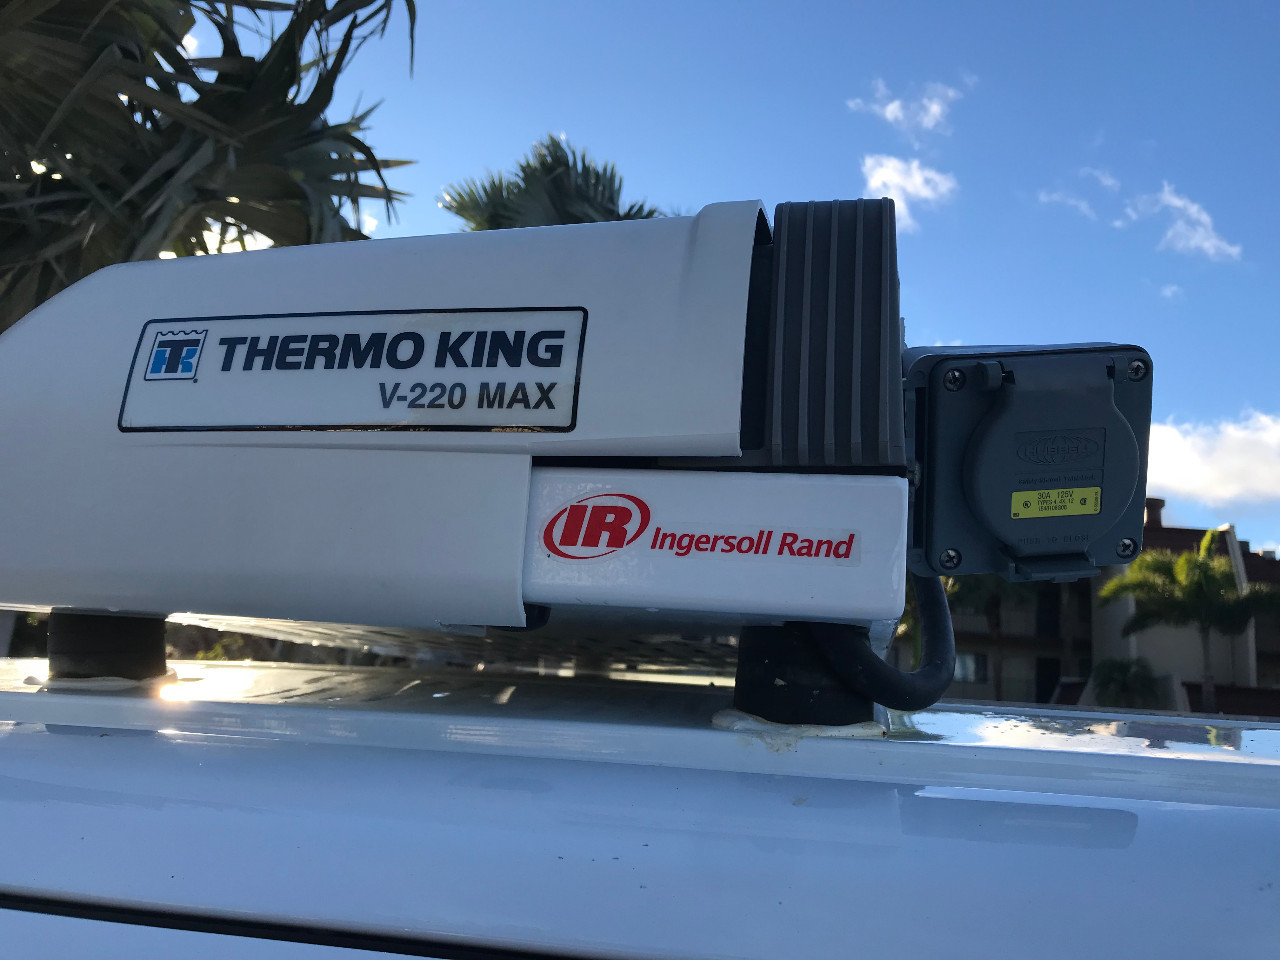 Thermo King West Palm Beach